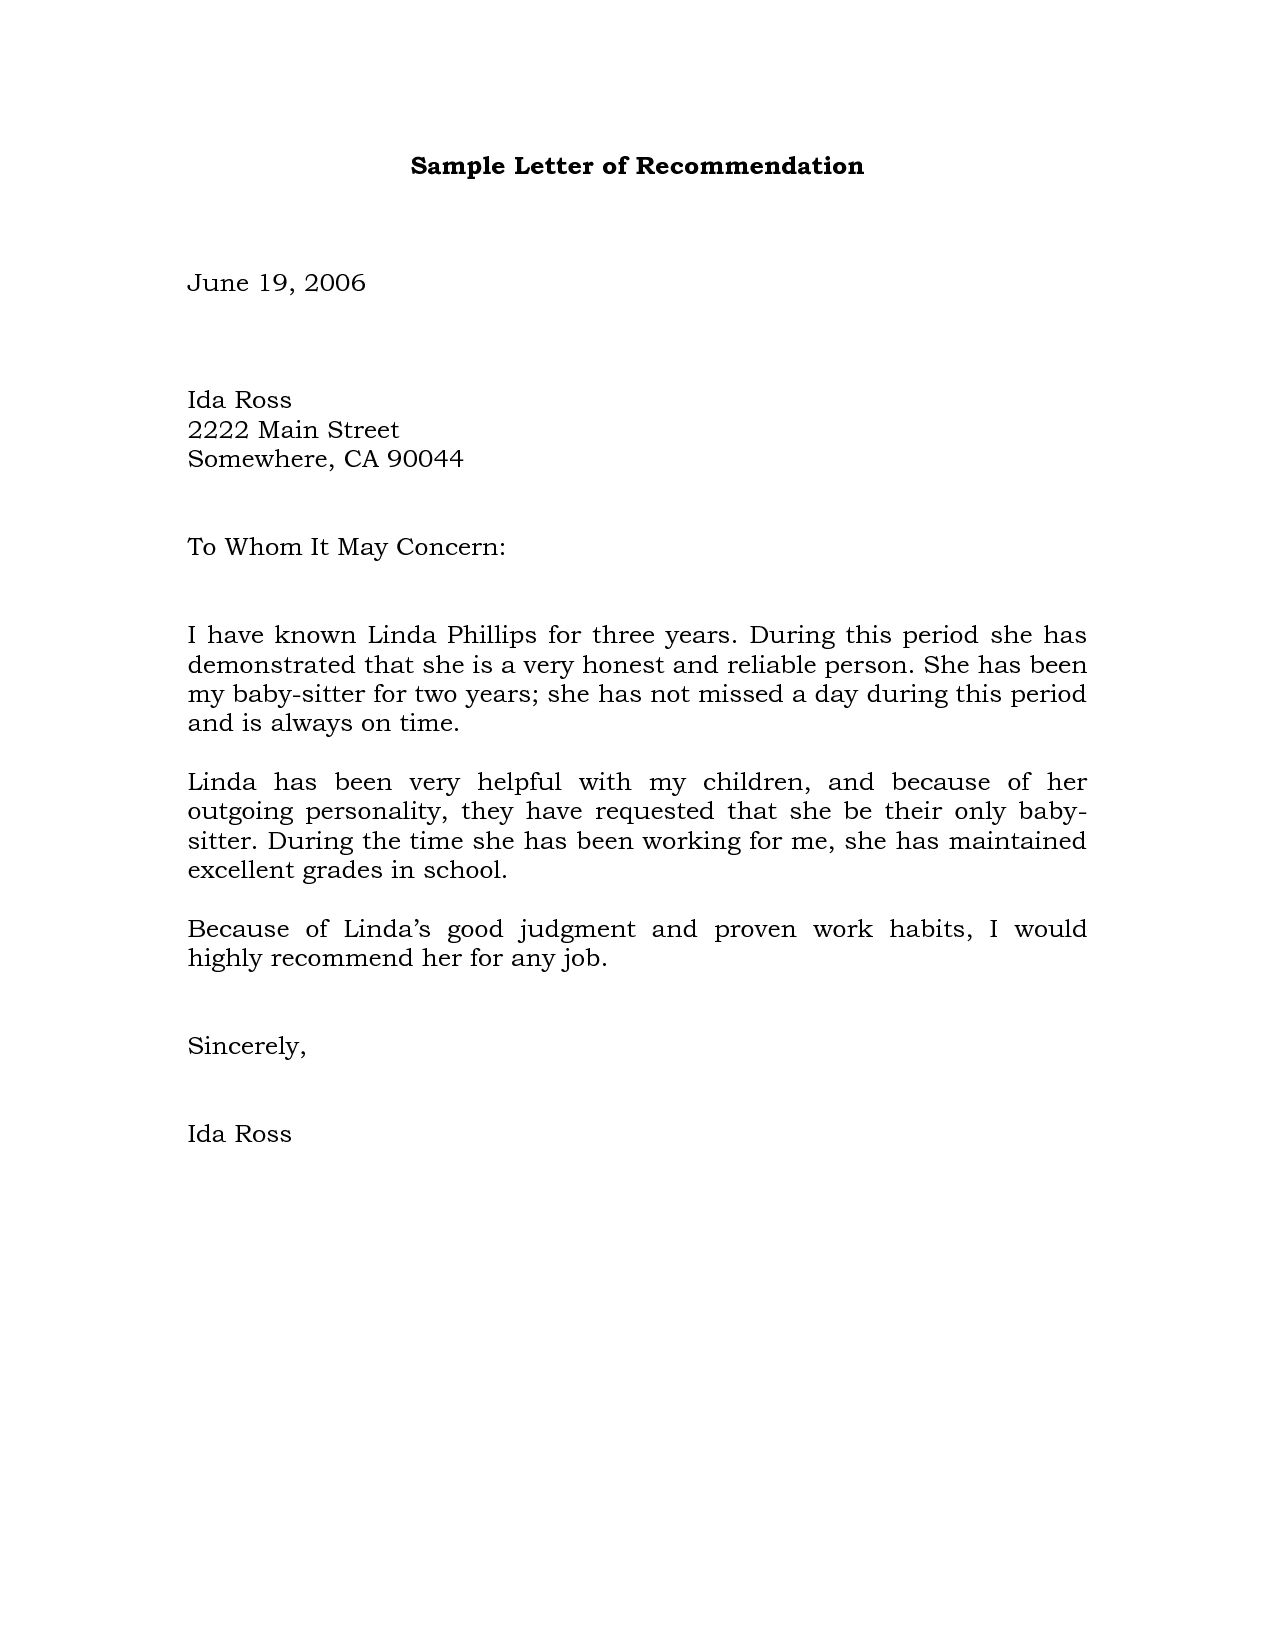 Sample Character Reference Letter for A Friend Template Samples ...